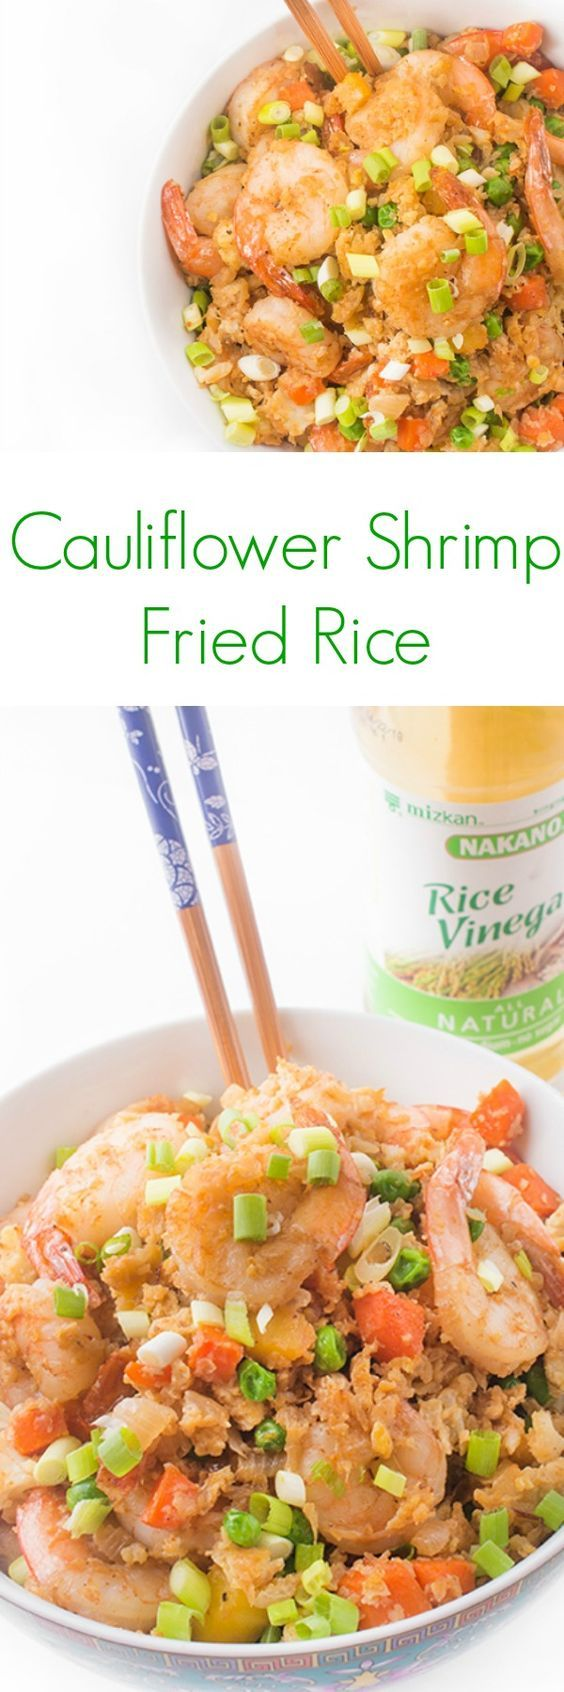 "Cauliflower Shrimp Fried Rice - Skip the takeout and try this paleo-friendly cauliflower shrimp ""fried rice"" recipe! You won't believe how easy and flavorful homemade Chinese food tastes."